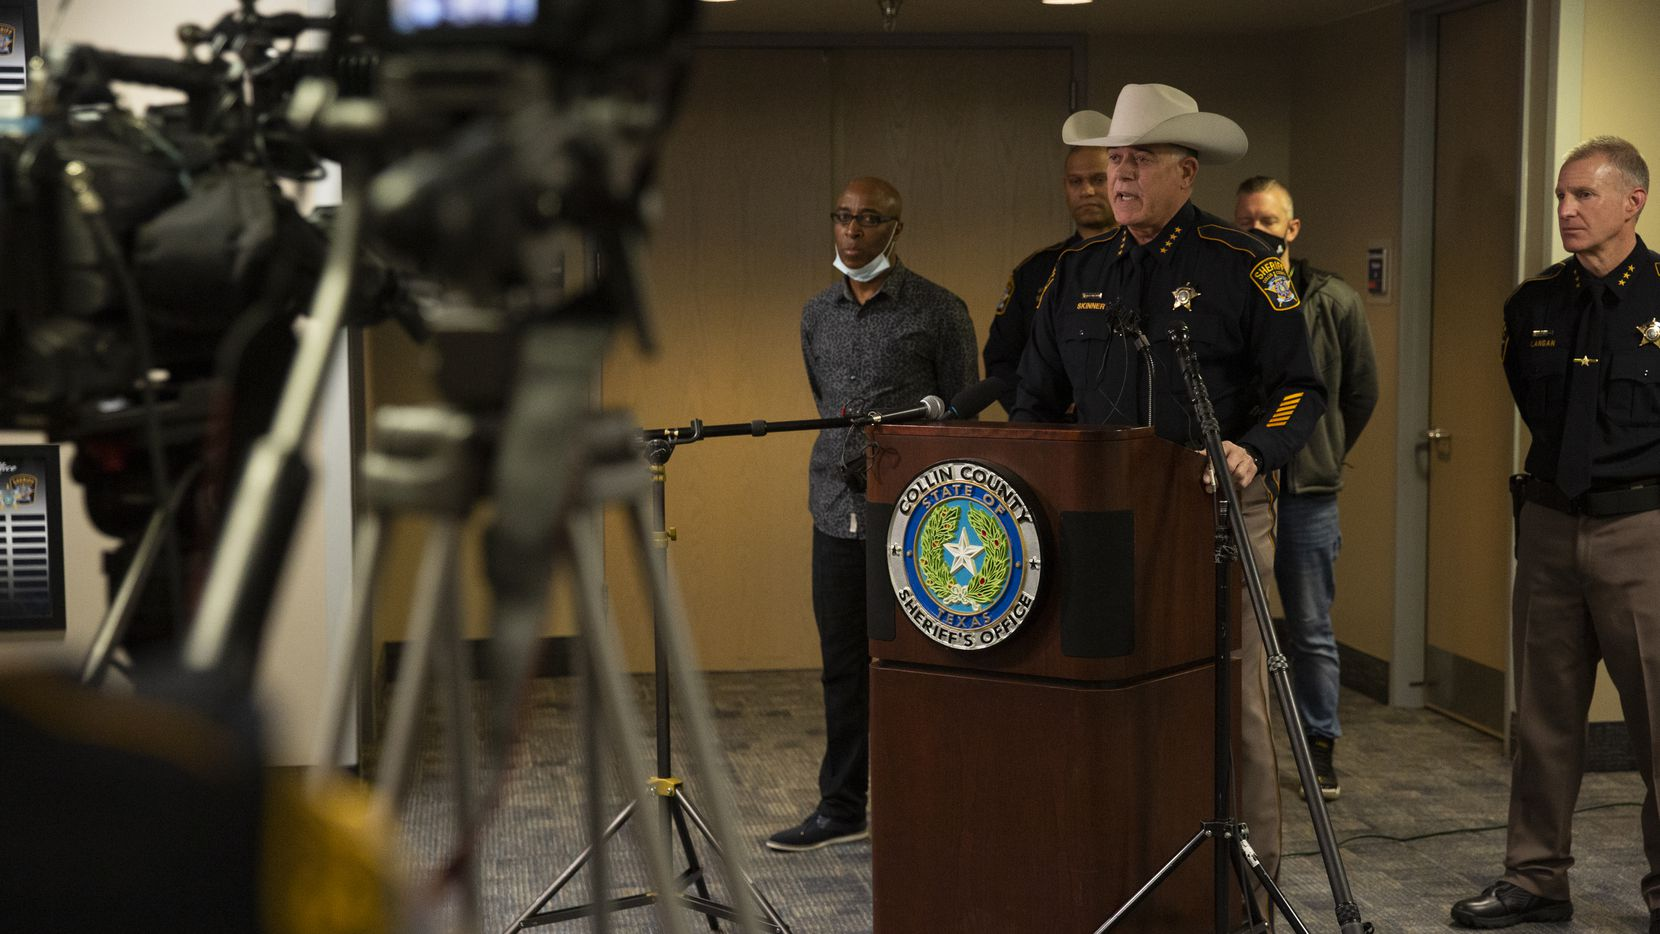 Collin County Sheriff Jim Skinner spoke at a news conference March 19 about the death of Marvin Scott III while in custody at the Collin County jail. Skinner announced Thursday that seven detention officers had been fired and an eighth resigned as the result of an internal investigation.